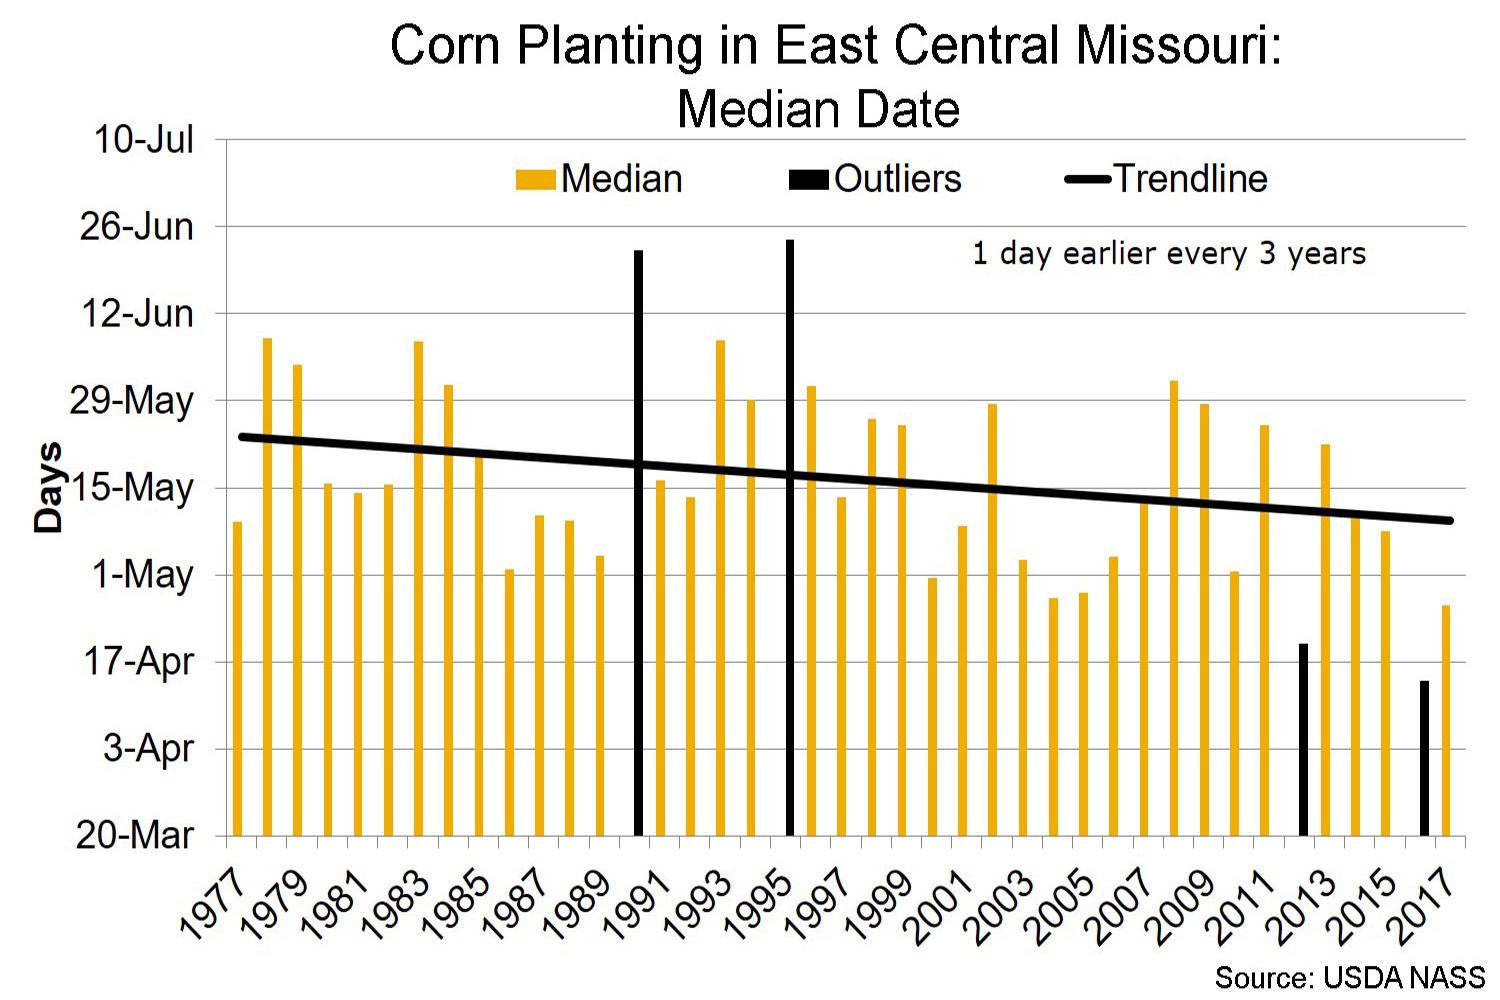 Corn planting in east central Missouri median date chart